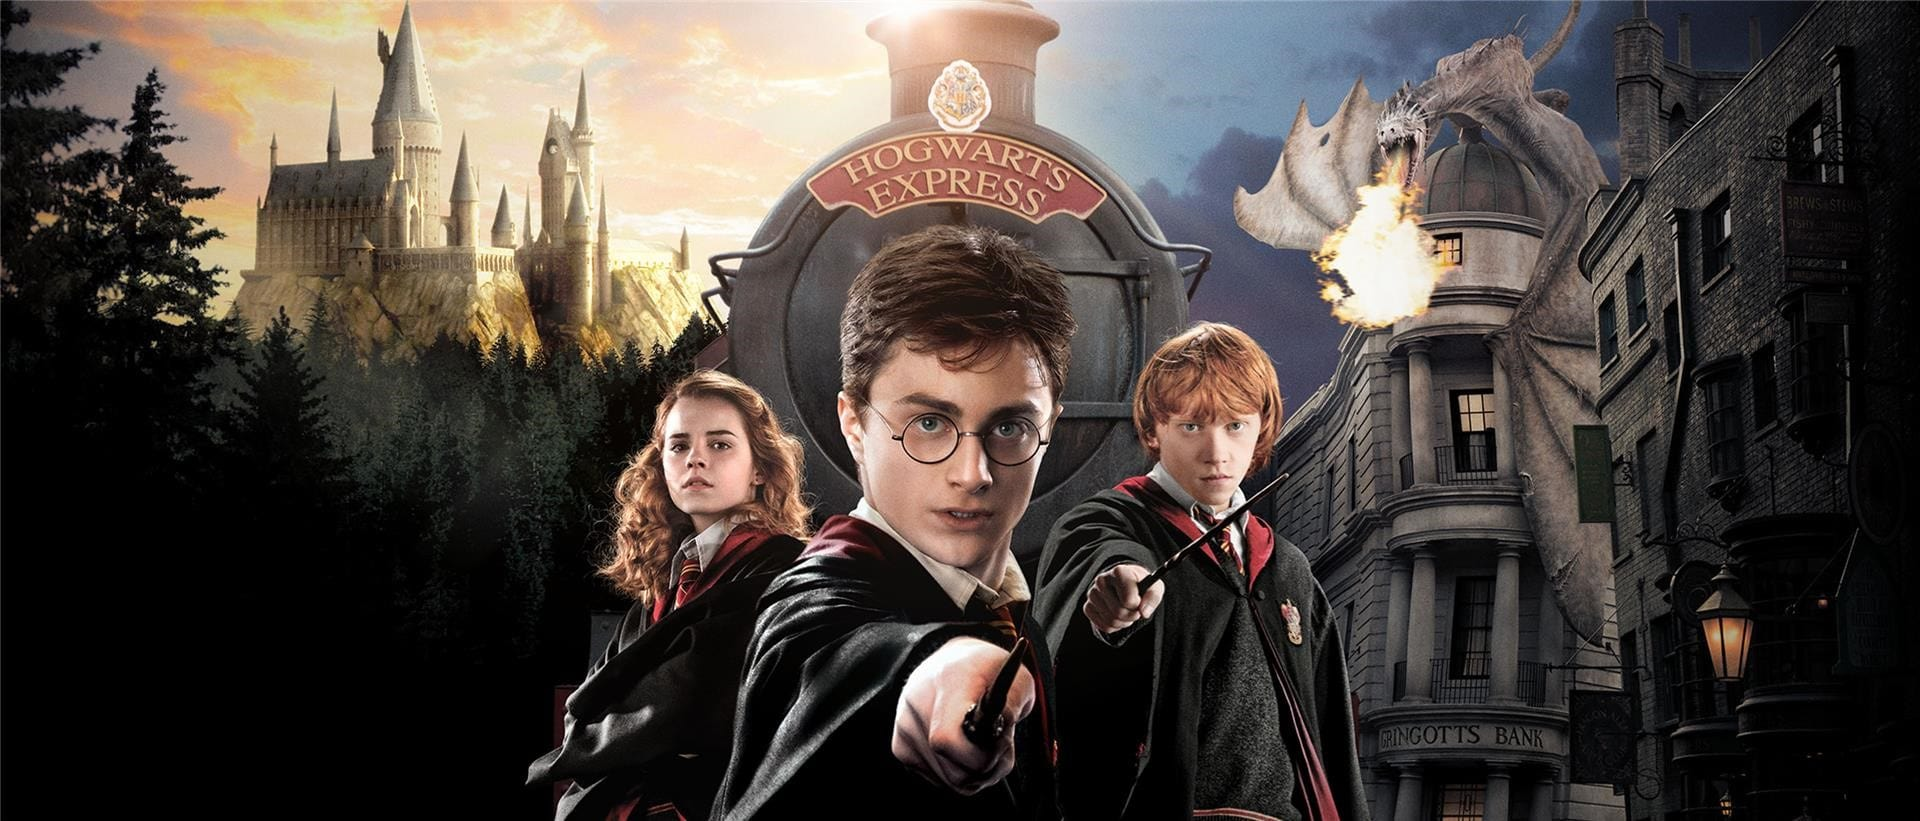 Harry potter - Harry Potter Ron Weasley And Hermione Granger Pose In Front Of The Hogwarts Express